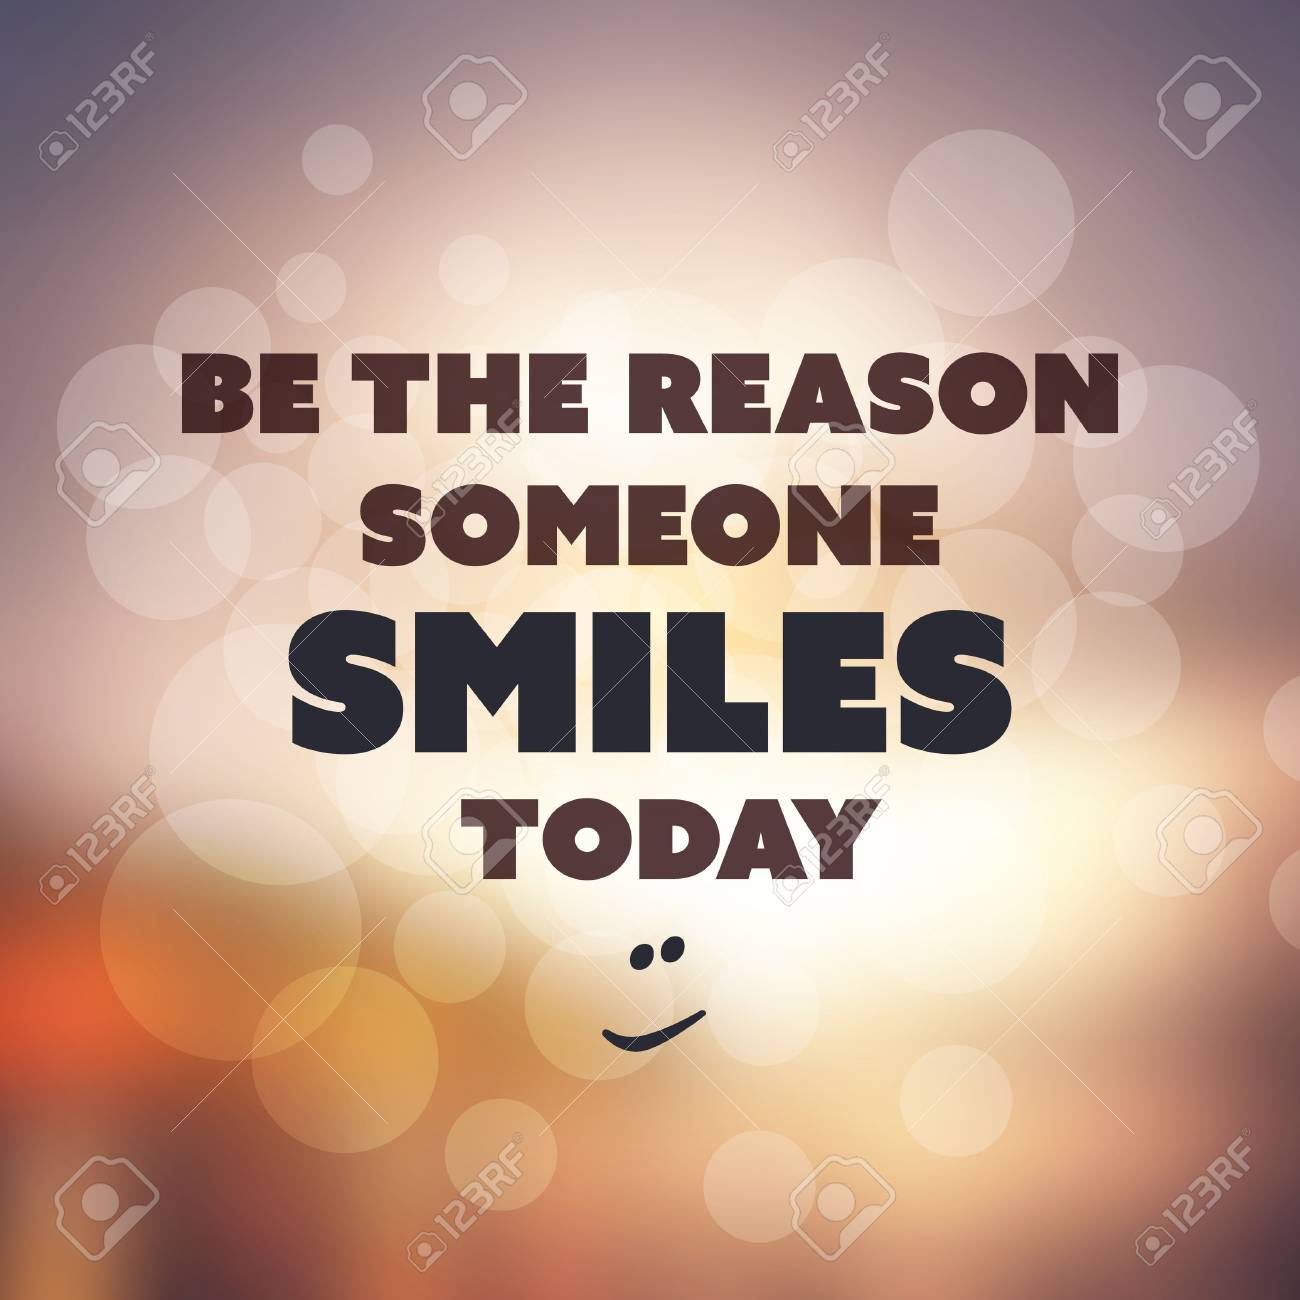 Be The Reason Someone Smiles Today Inspirational Quote Slogan